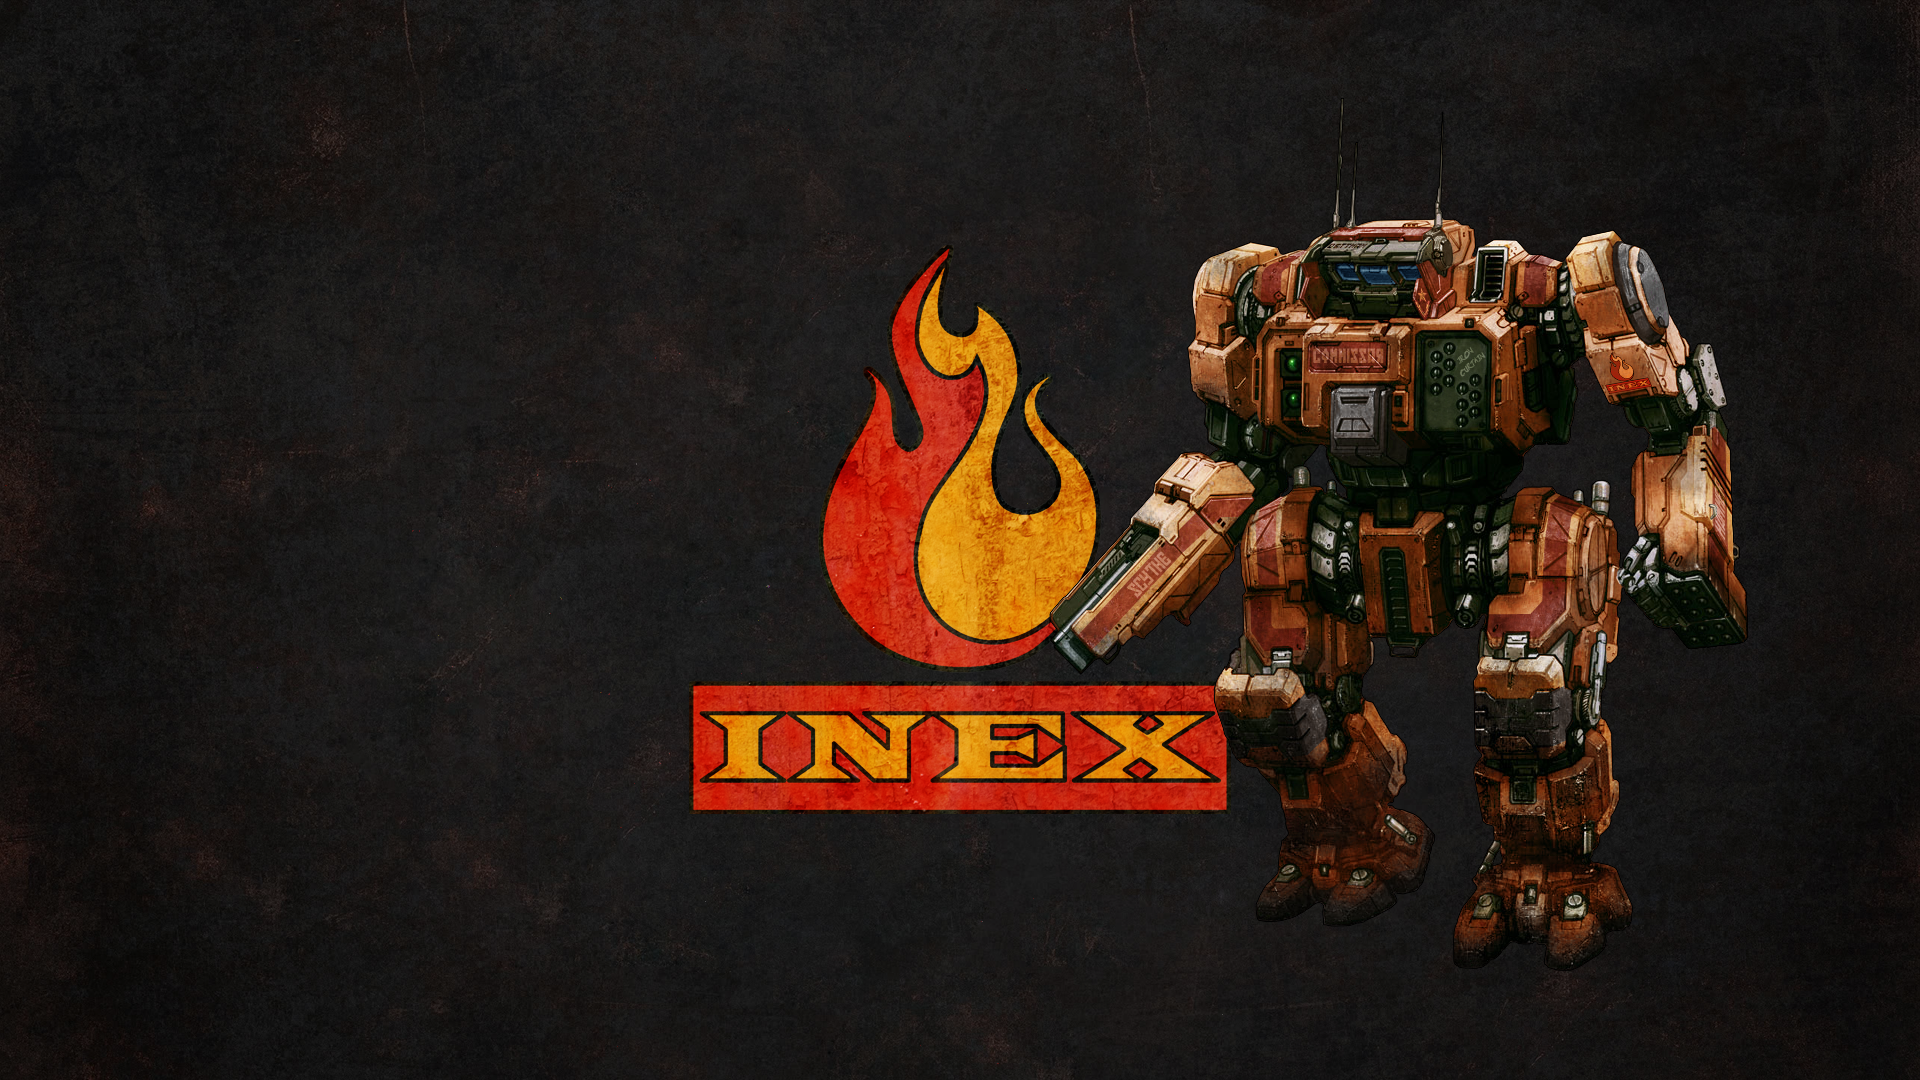 MWO Highlander Commissar wallpaper by Odanan 1920x1080